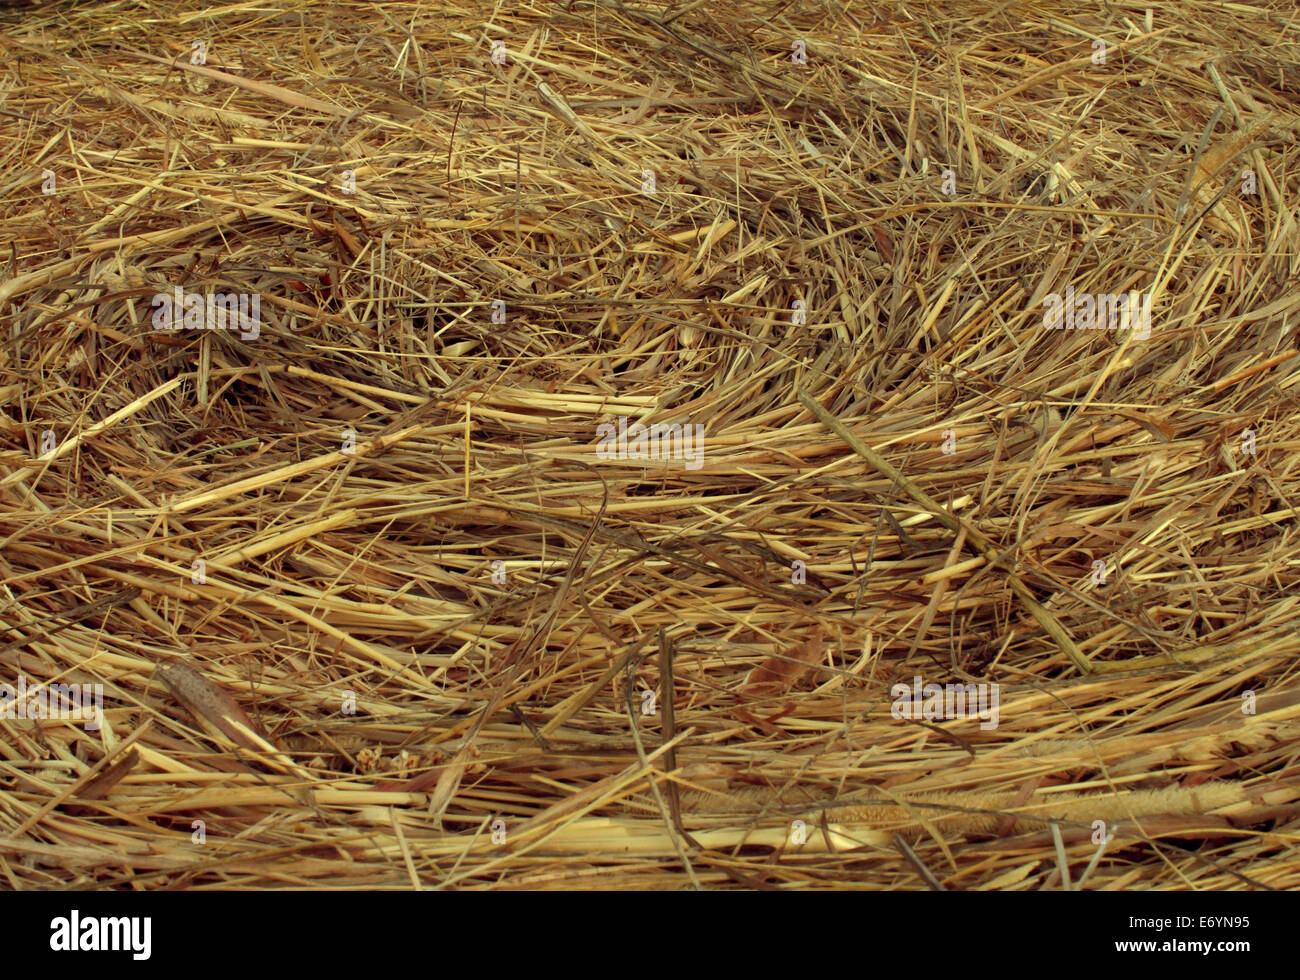 Hay Circular Texture background as an angled view of a circle bale of hay as an agriculture farm and farming symbol - Stock Image